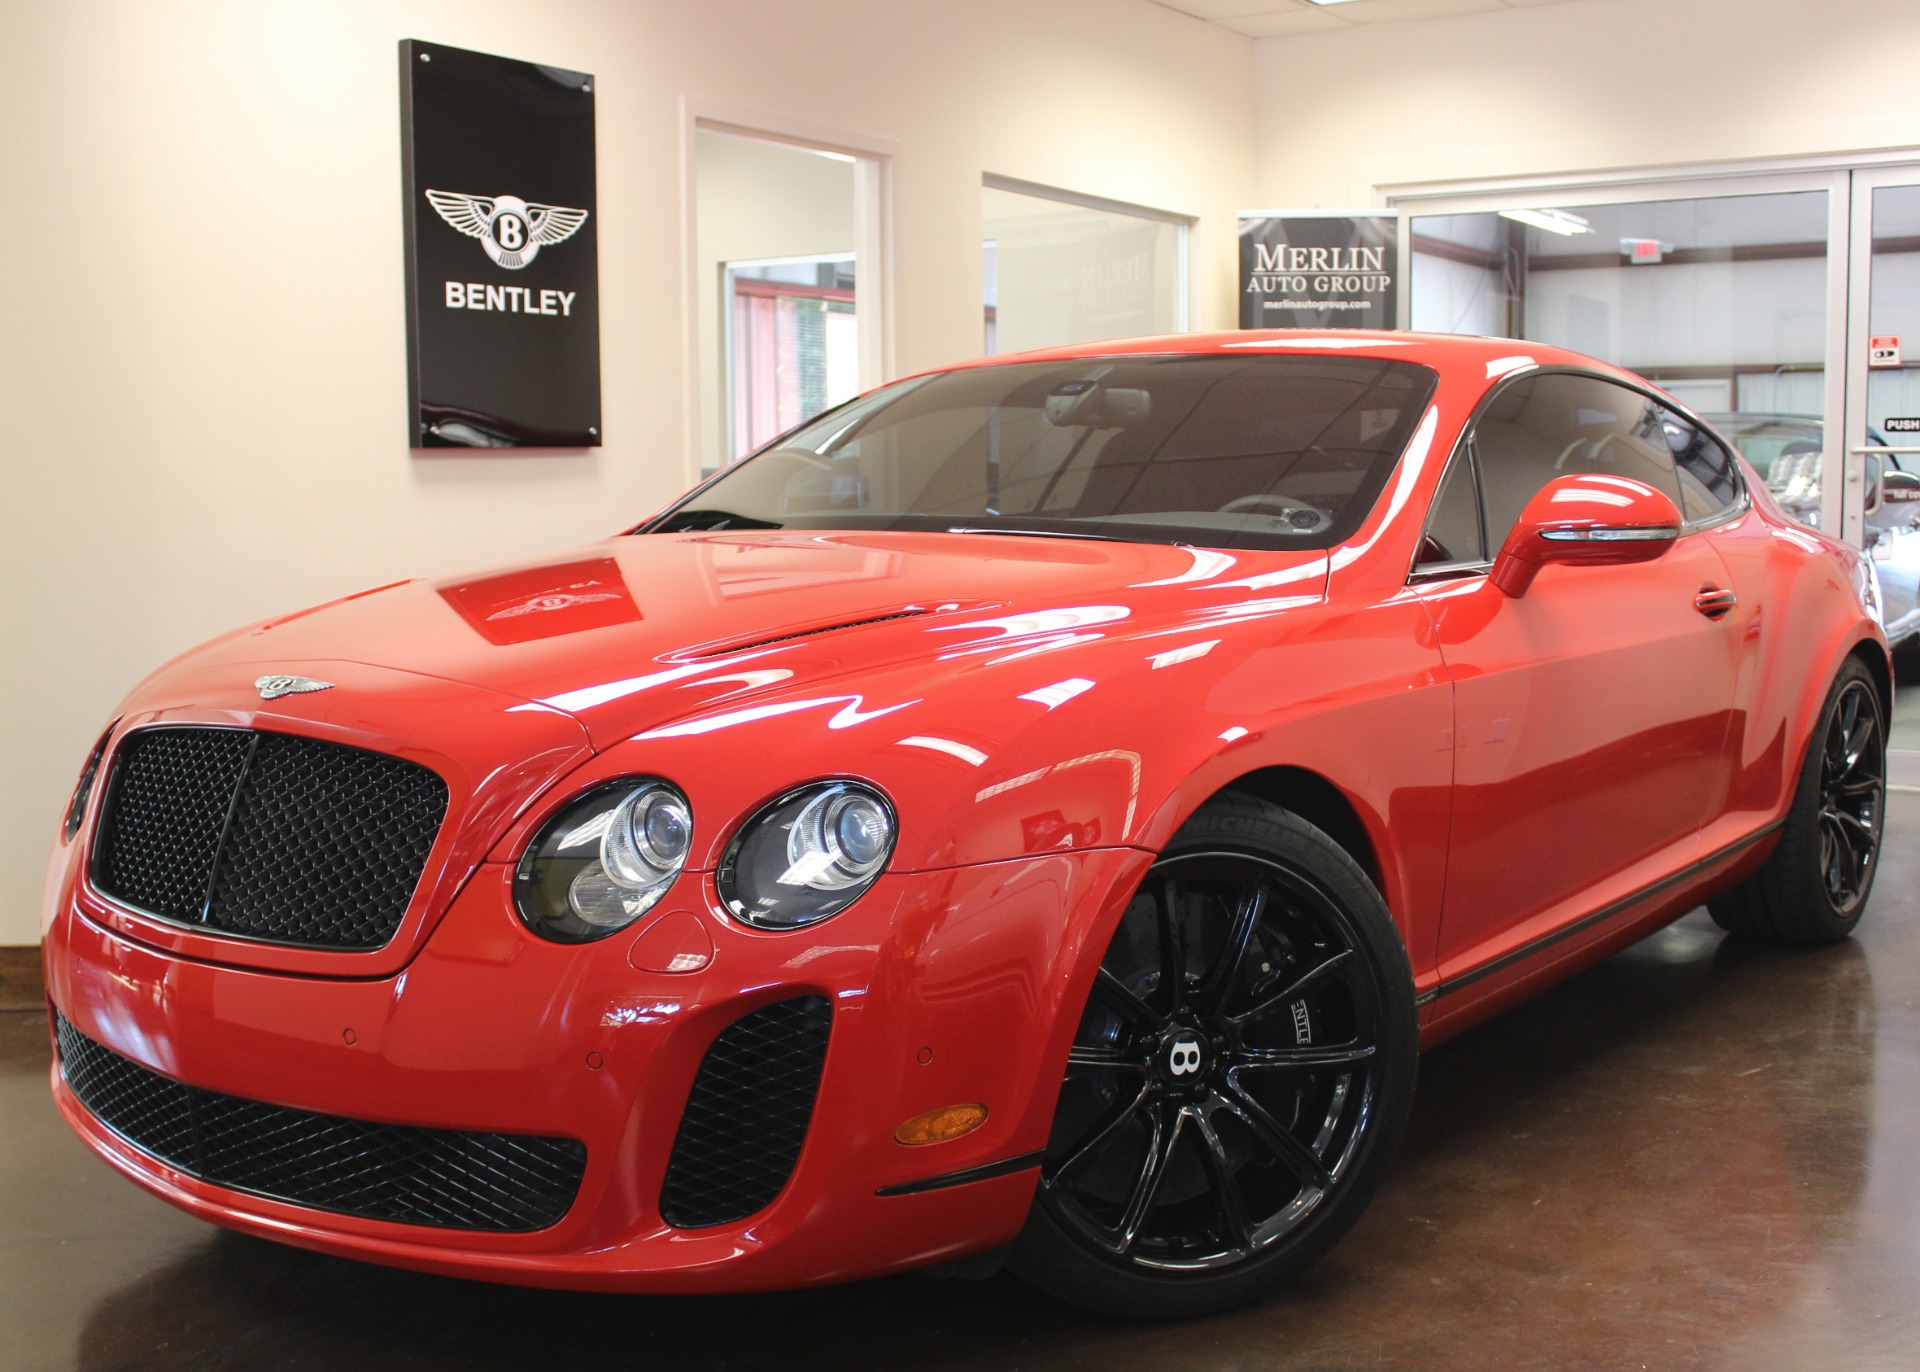 2010 Bentley Continental Supersports 9 558 Miles St James Red